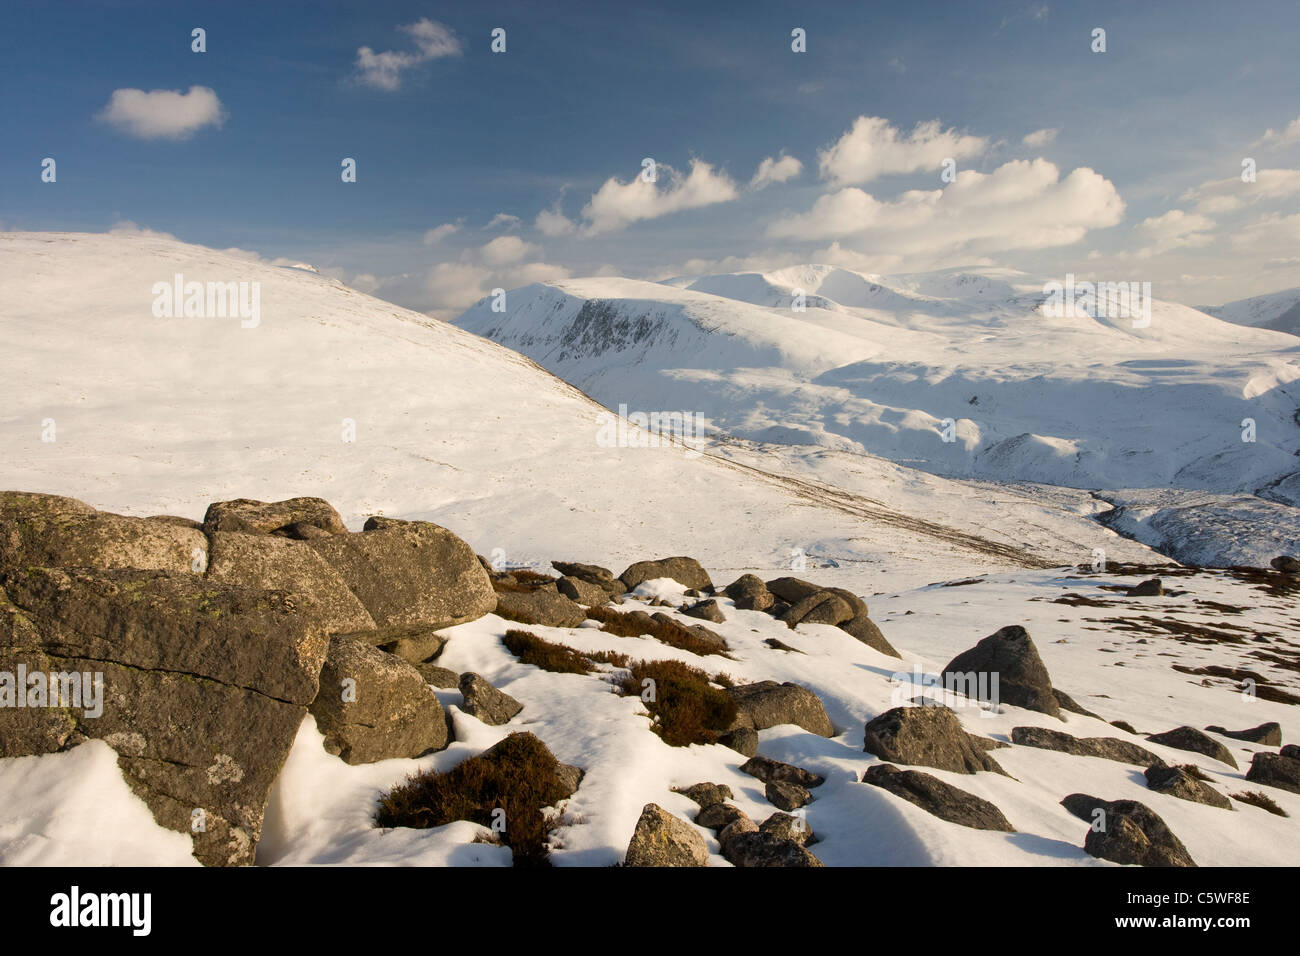 Braeriach and Lairig Ghru in winter, Grampian Mountains, Cairngorms National Park, Scotland, Great Britain. - Stock Image